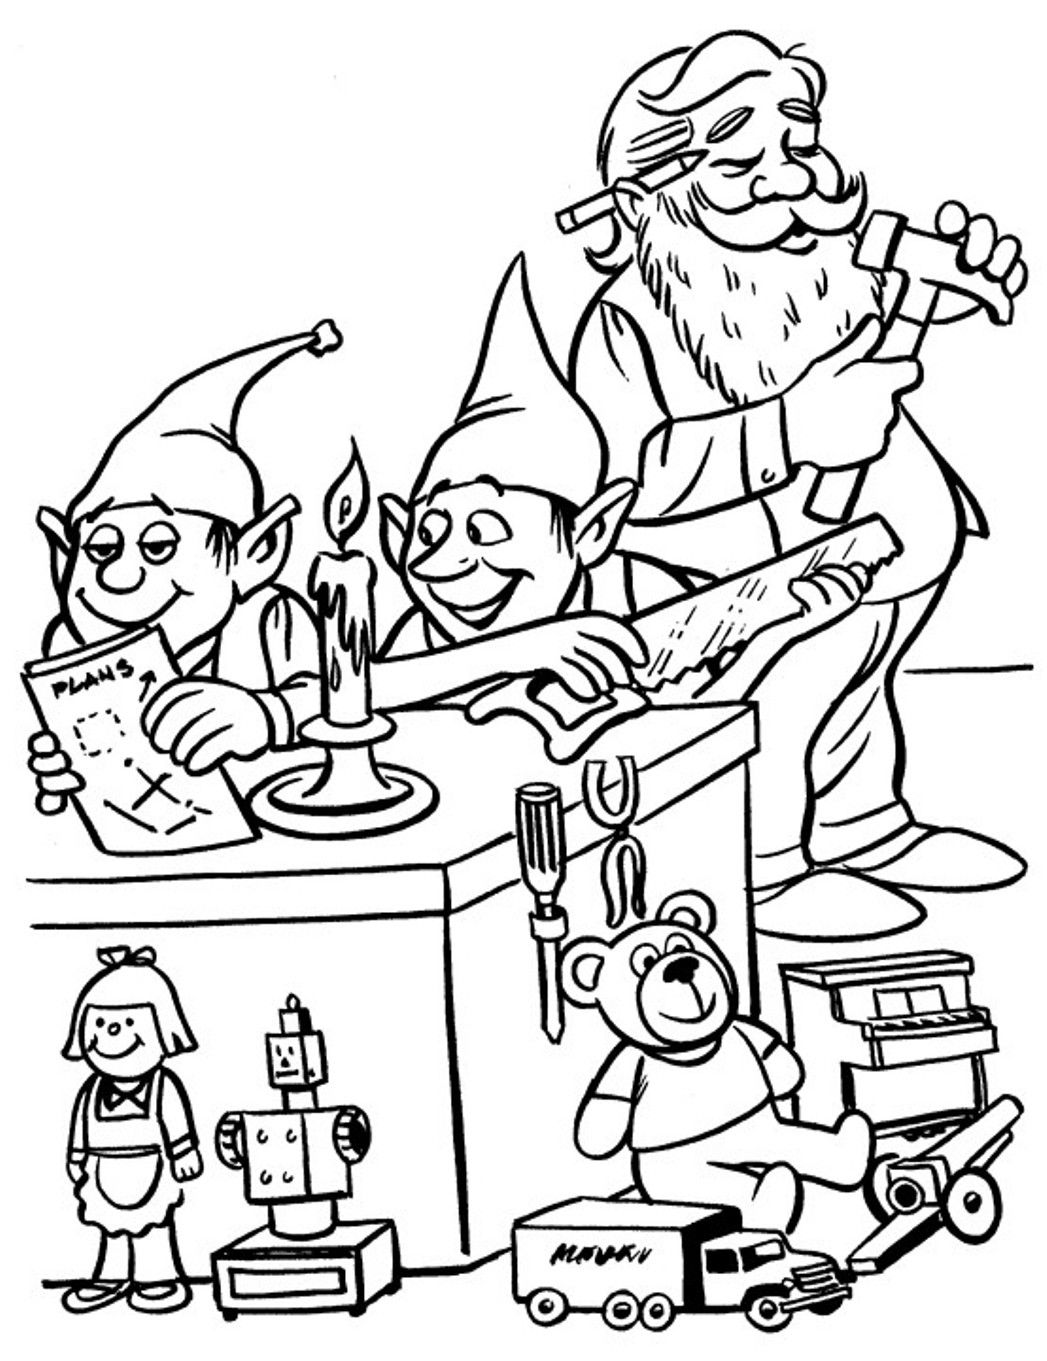 Printable Christmas Coloring Page Elves In Workshop Sketch